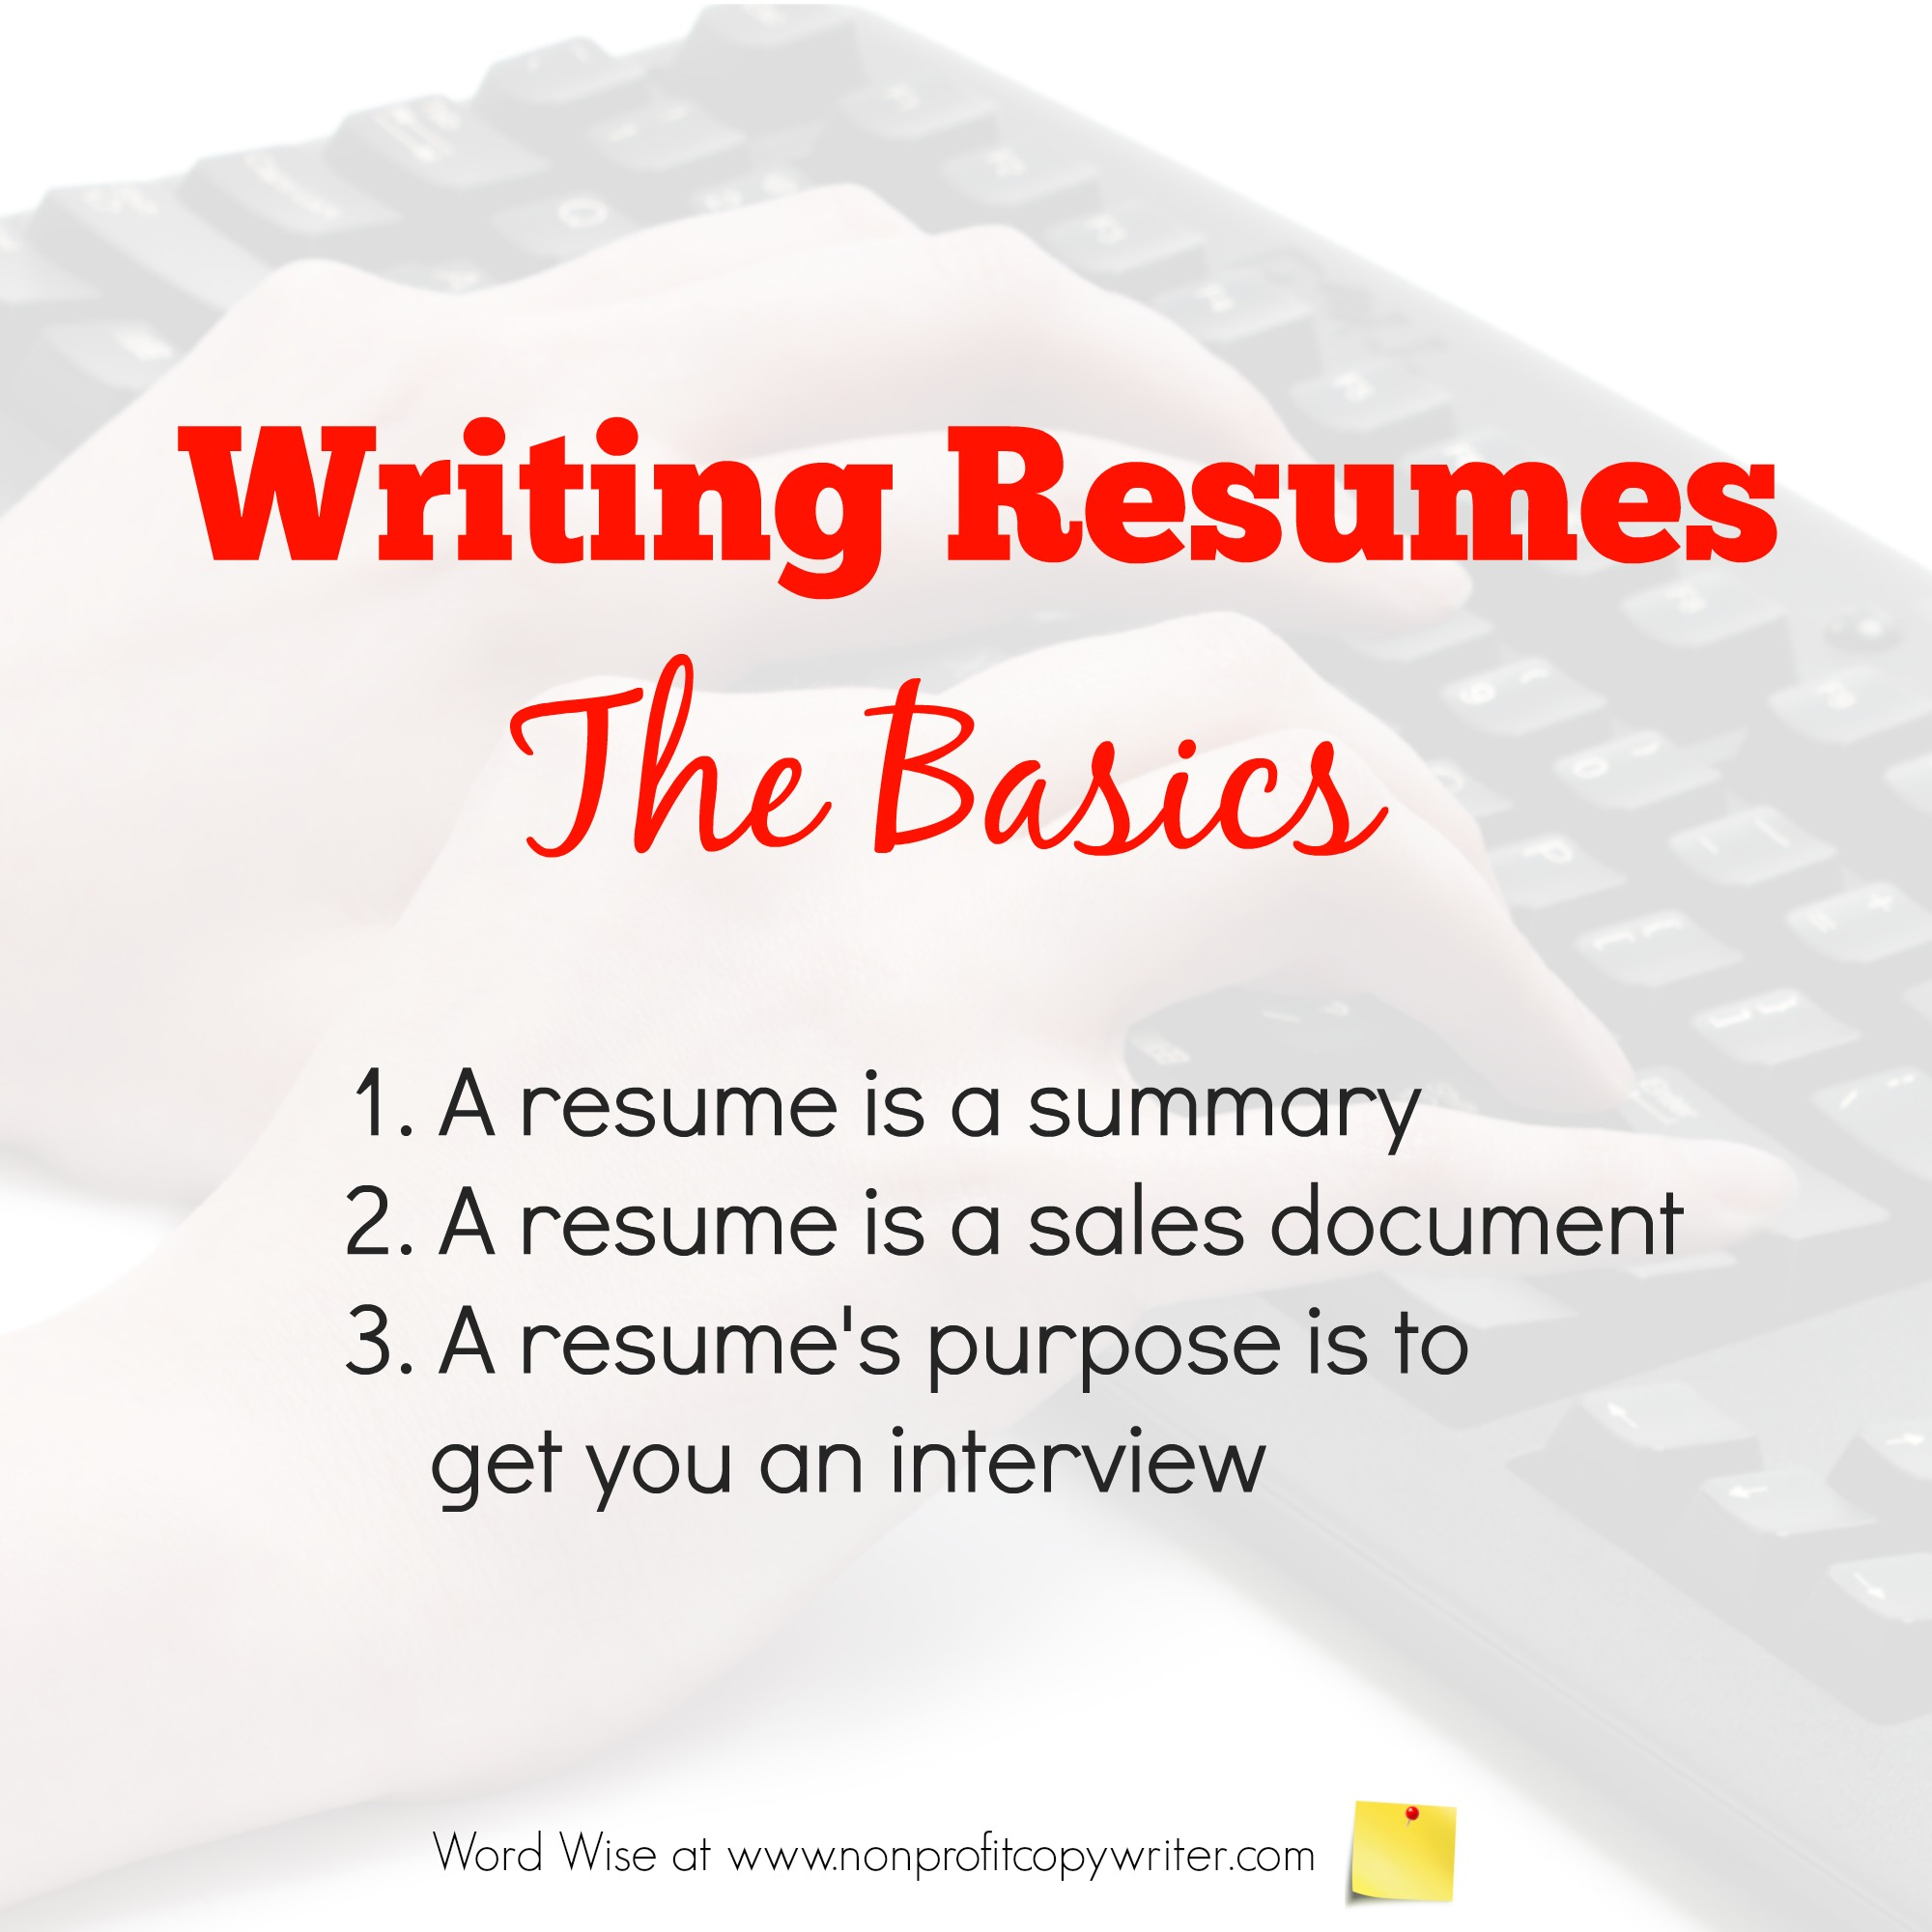 basics about writing resumes